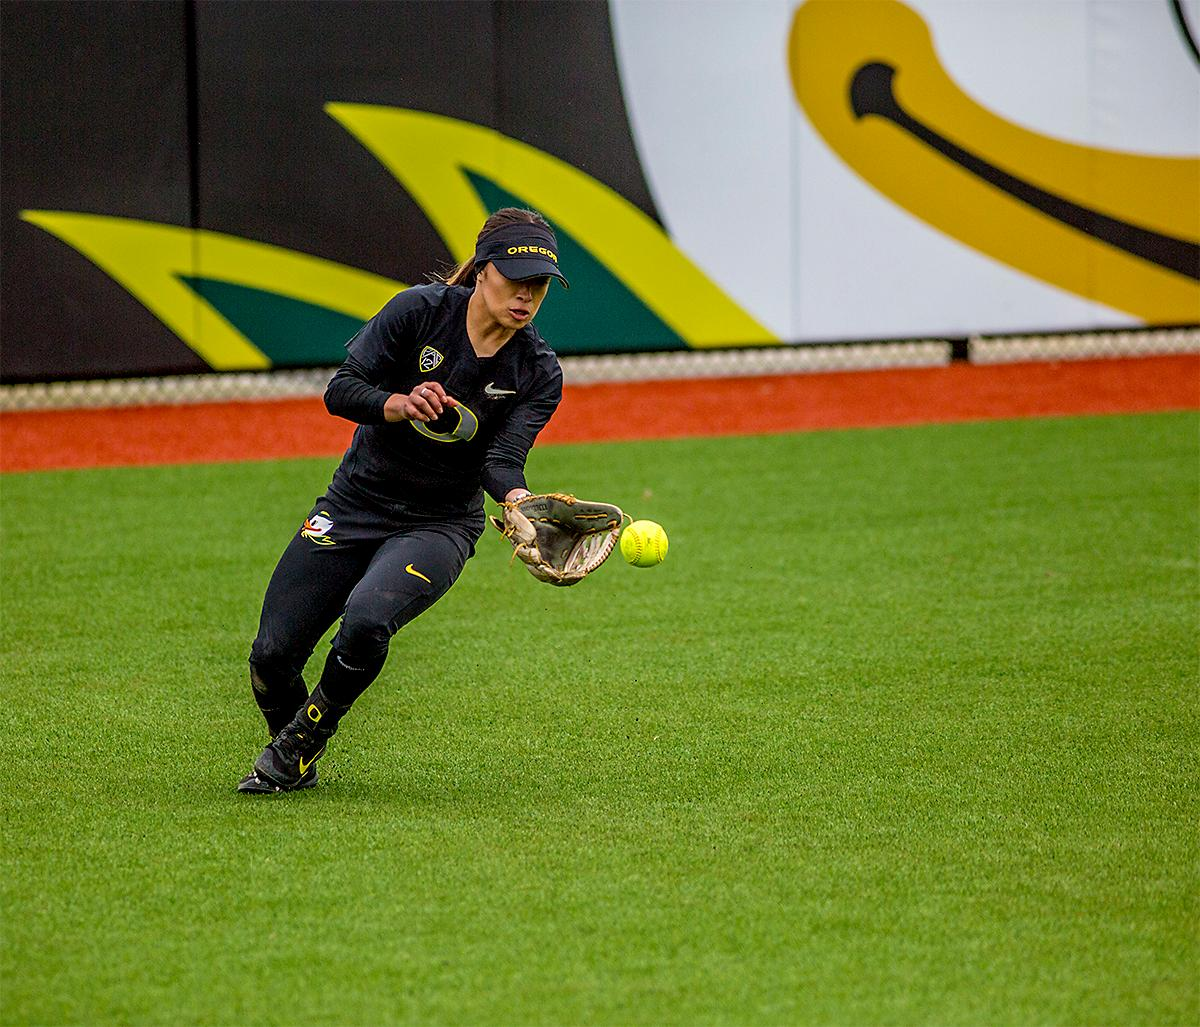 The Duck's Sammie Puentes (#5) makes the catch in the outfield. The Oregon Ducks defeated the Cal Golden Bears 2-1 in the second game of the three game series. Photo by August Frank, Oregon News Lab